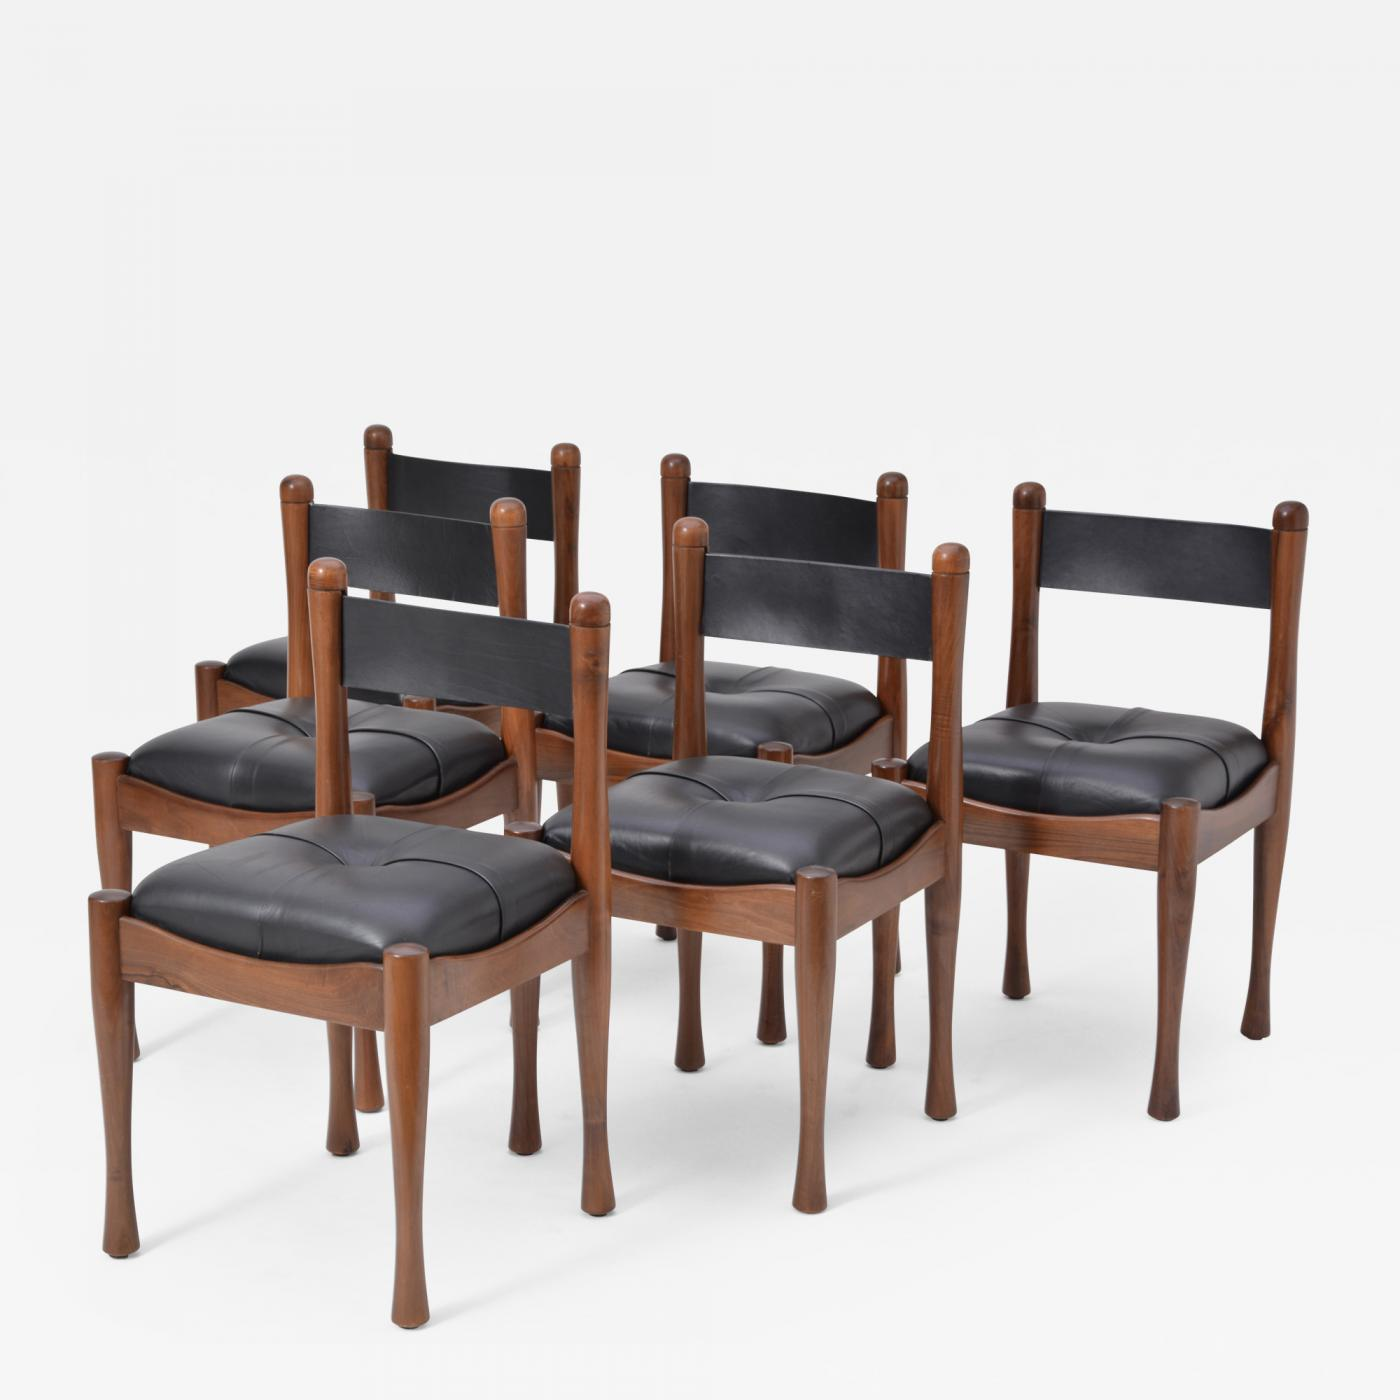 Italian Dining Chairs Silvio Coppola Set Of Six Italian Dining Chairs By Silvio Coppola For Bernini